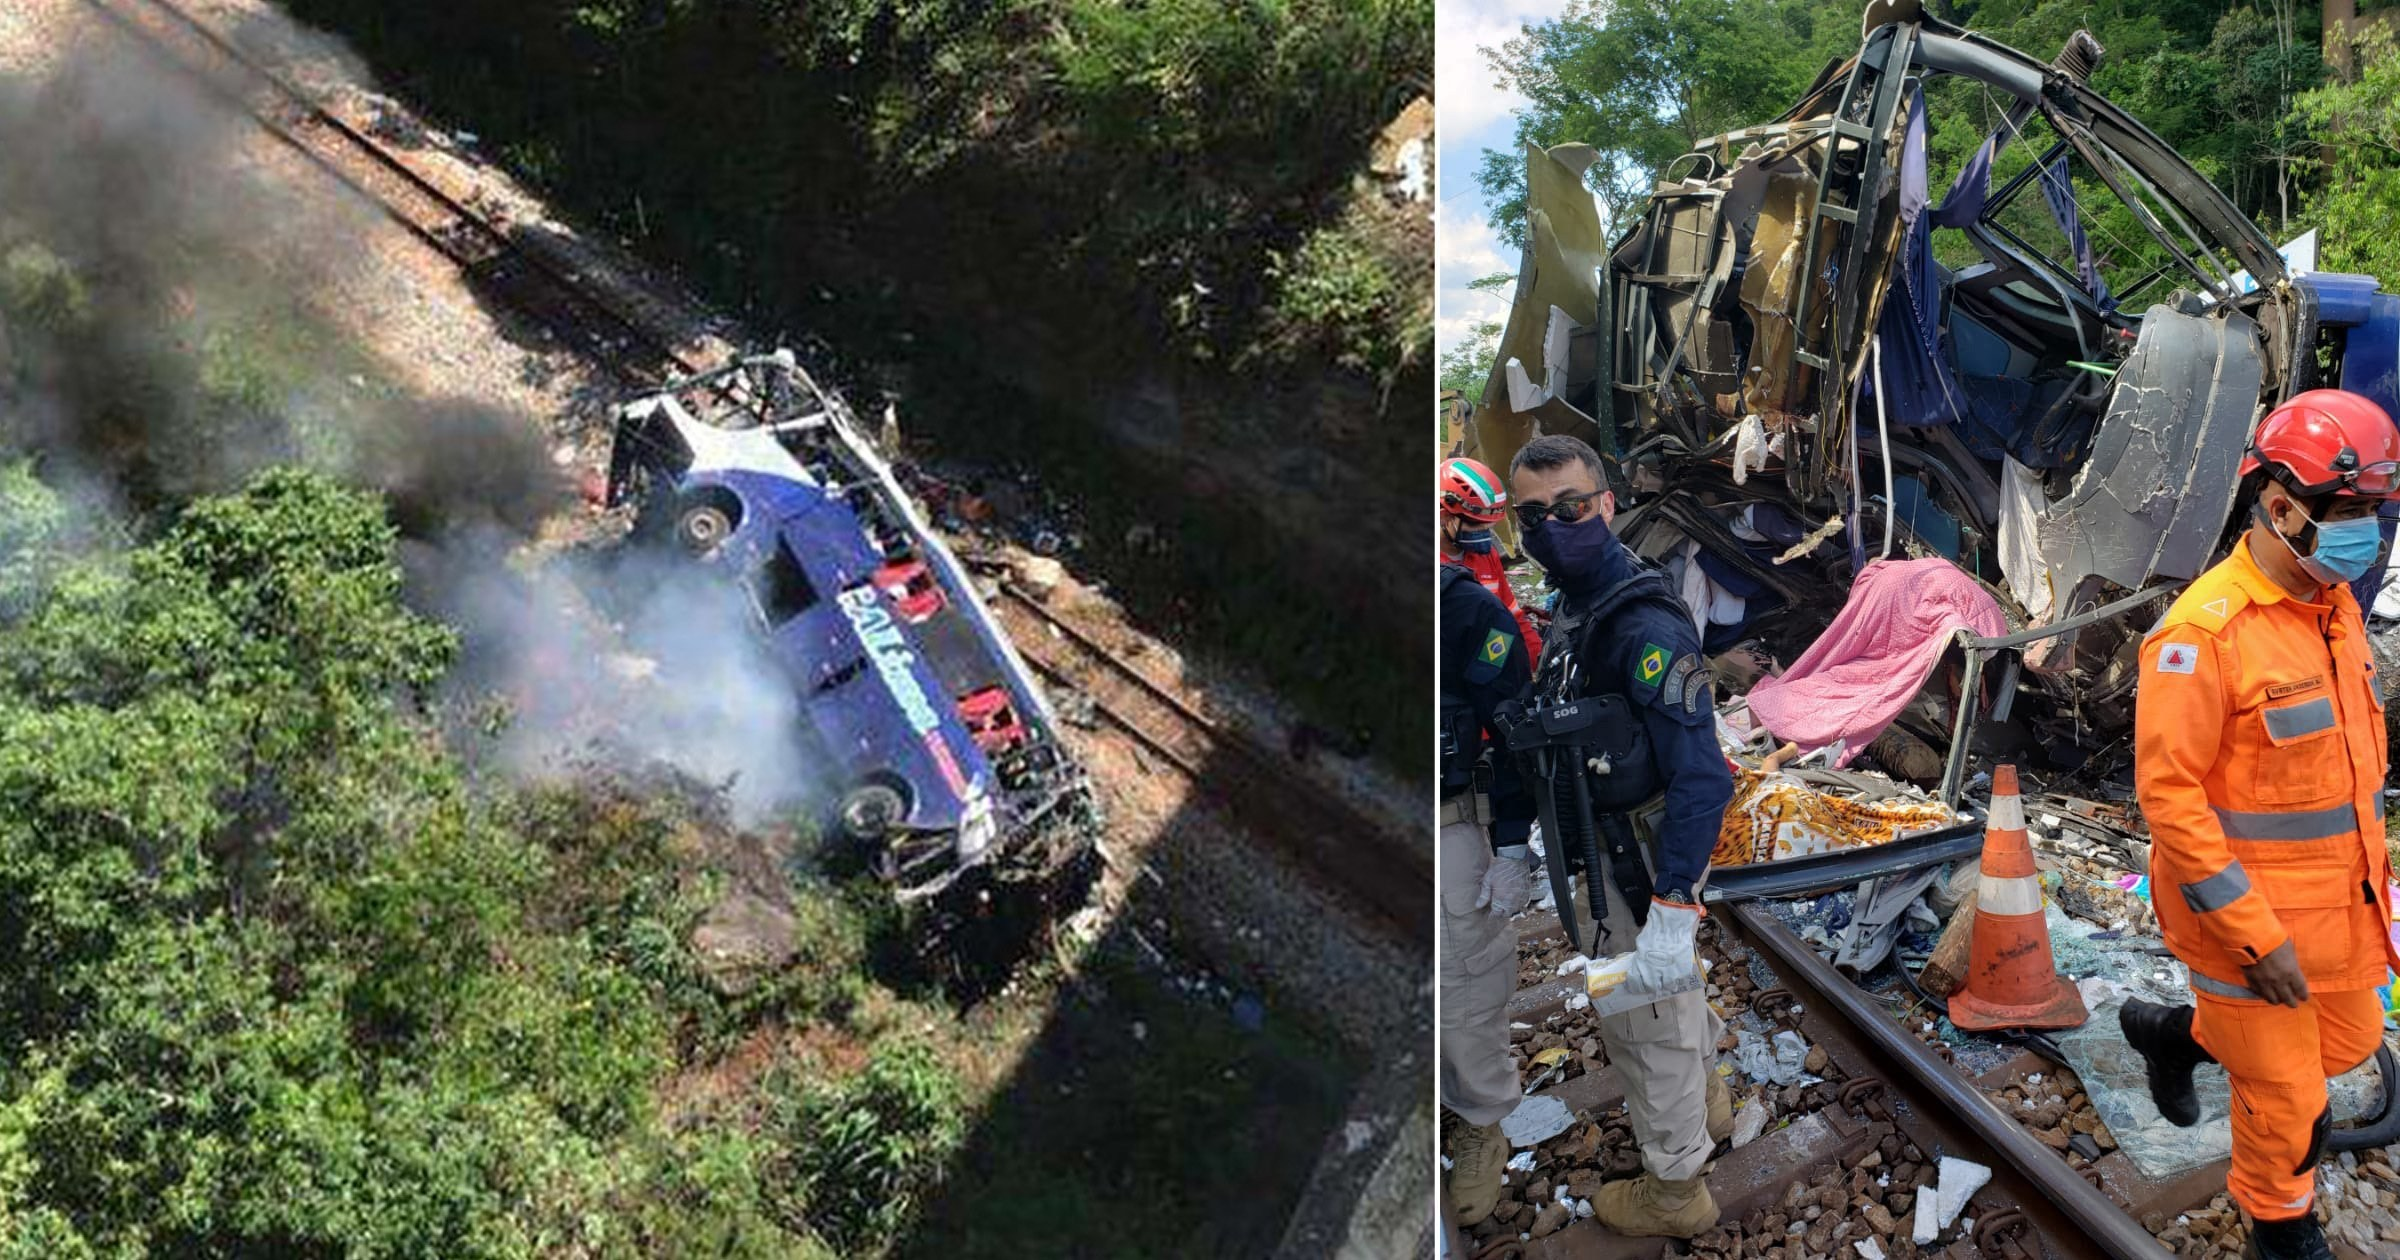 15 dead and 30 injured after tour bus plunges from bridge in Brazil